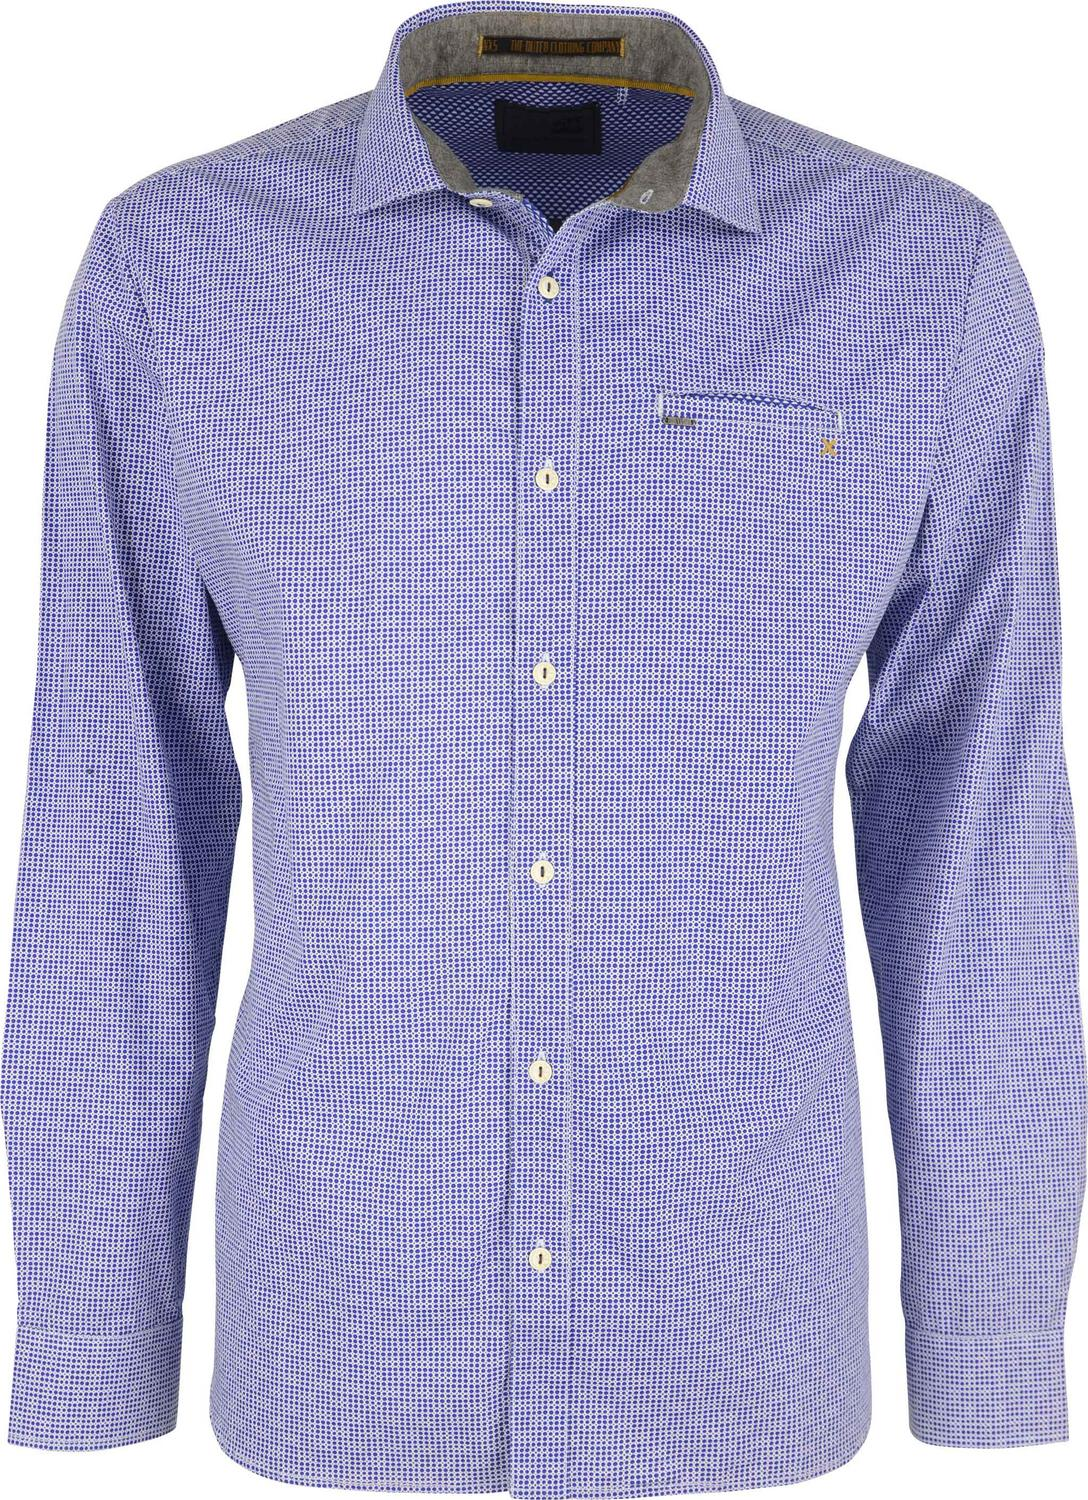 Mini Printed Stretch Shirt With Chest Pocket